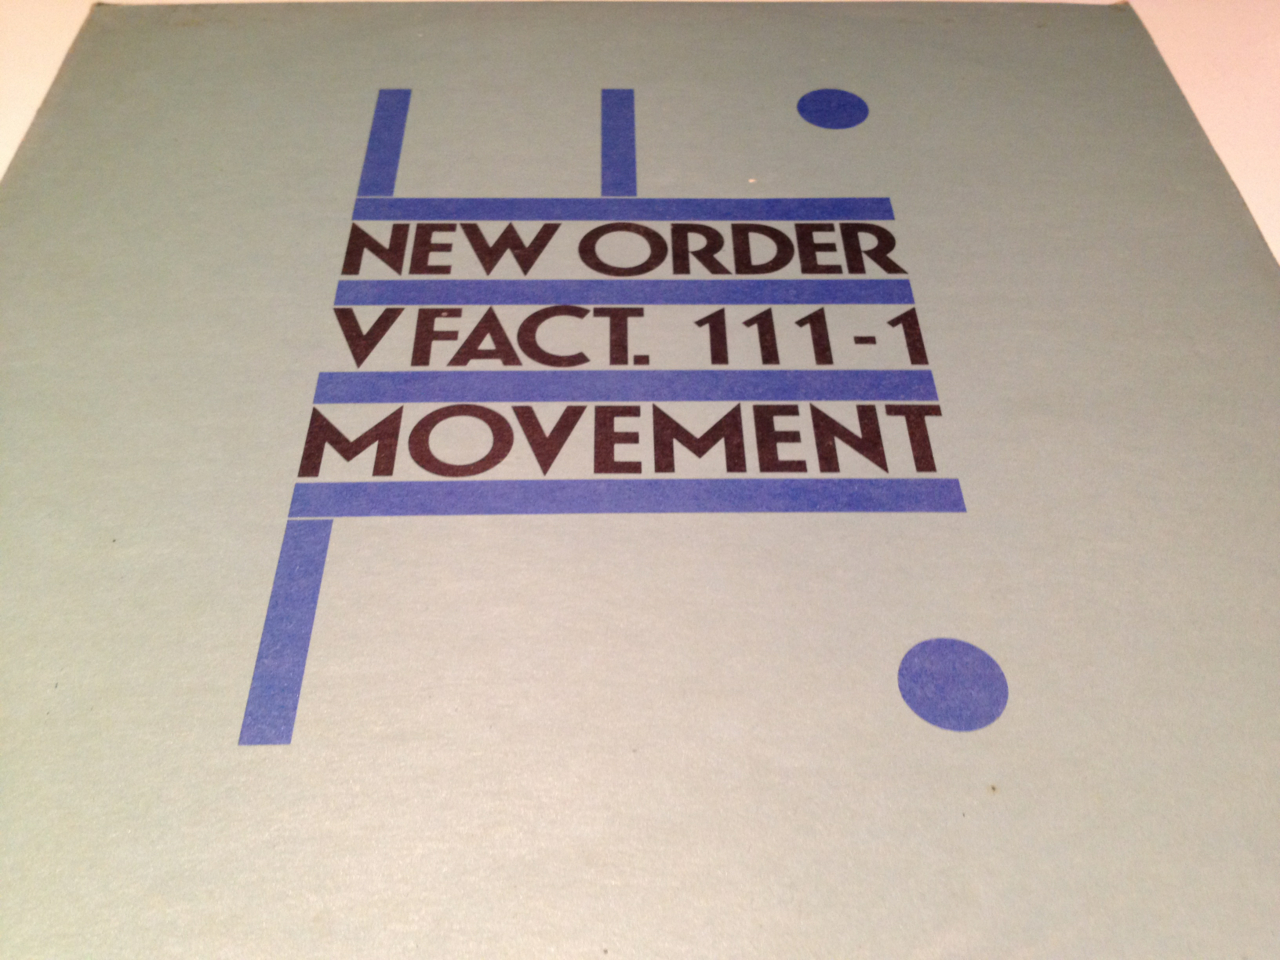 New Order. Movement.